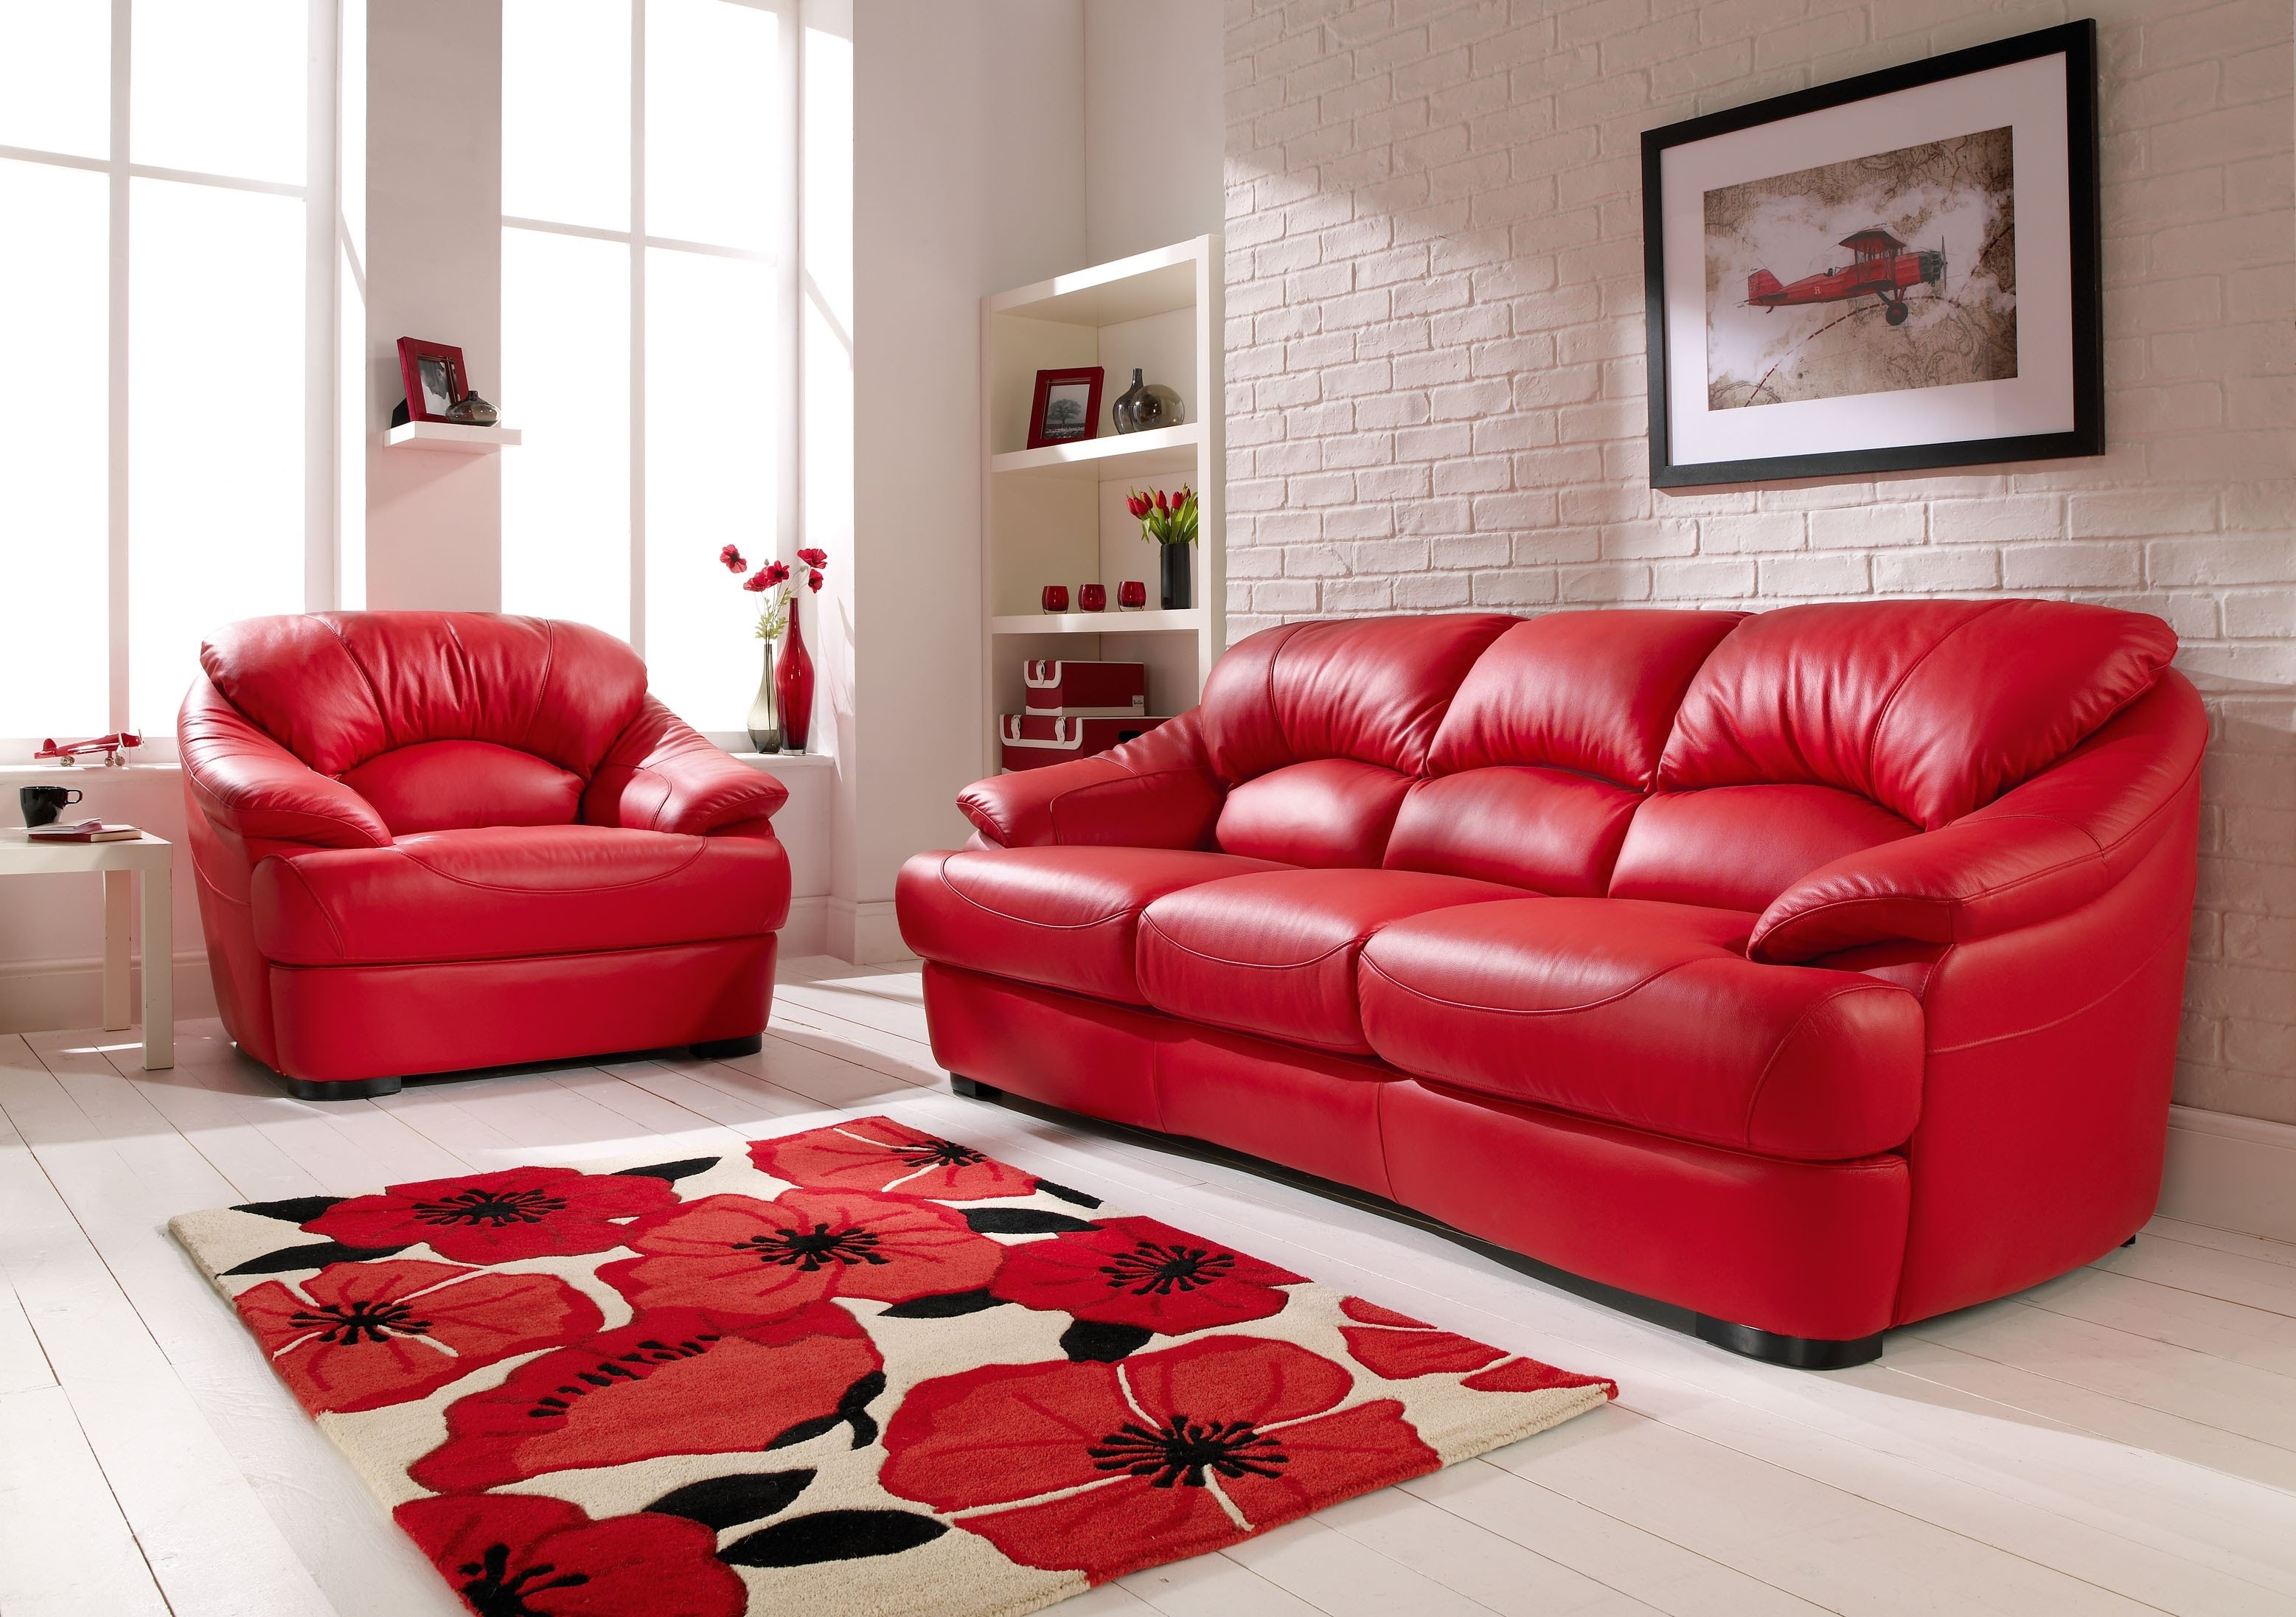 Red Leather Sofa – Youtube For Red Leather Sofas (Image 8 of 10)